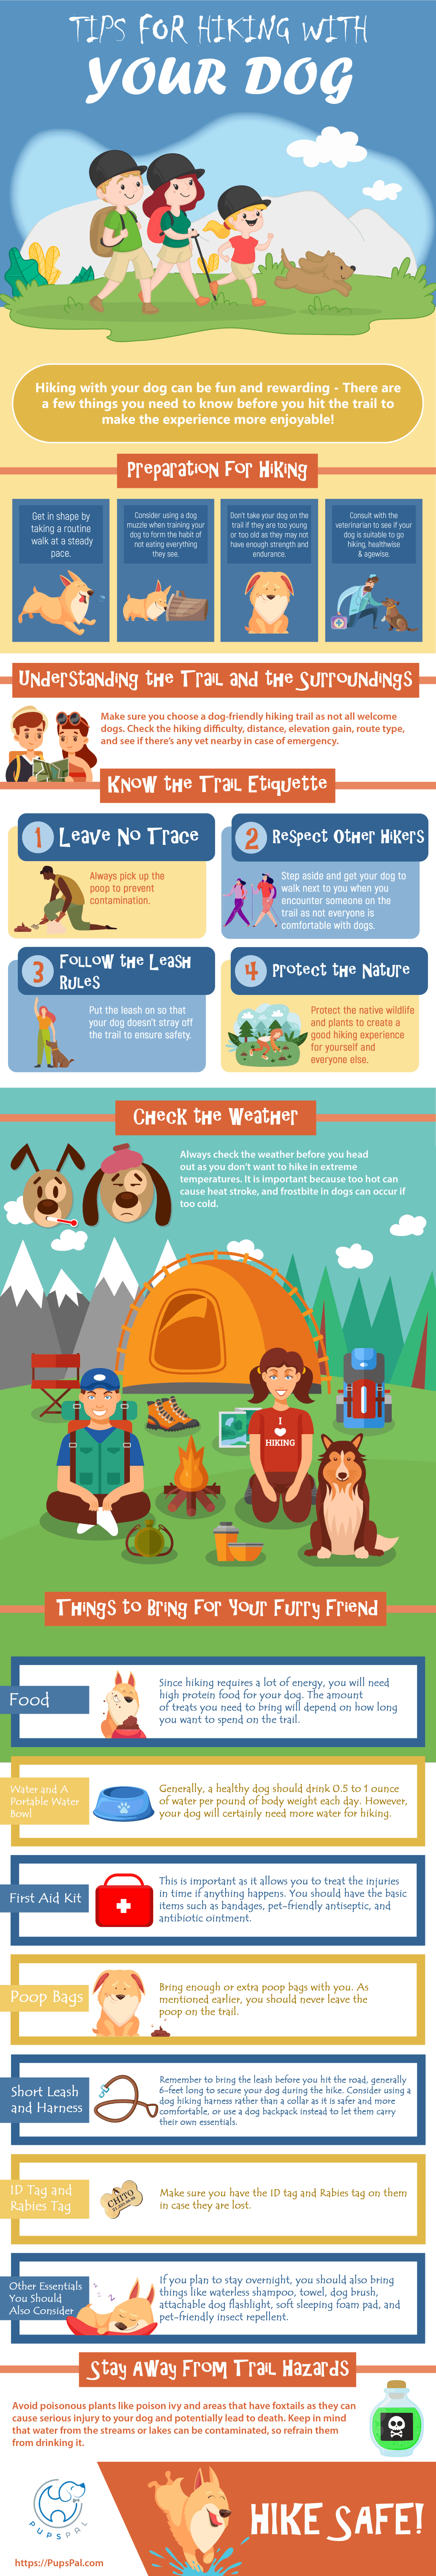 How To Plan A Hiking Trip With Your Dog?